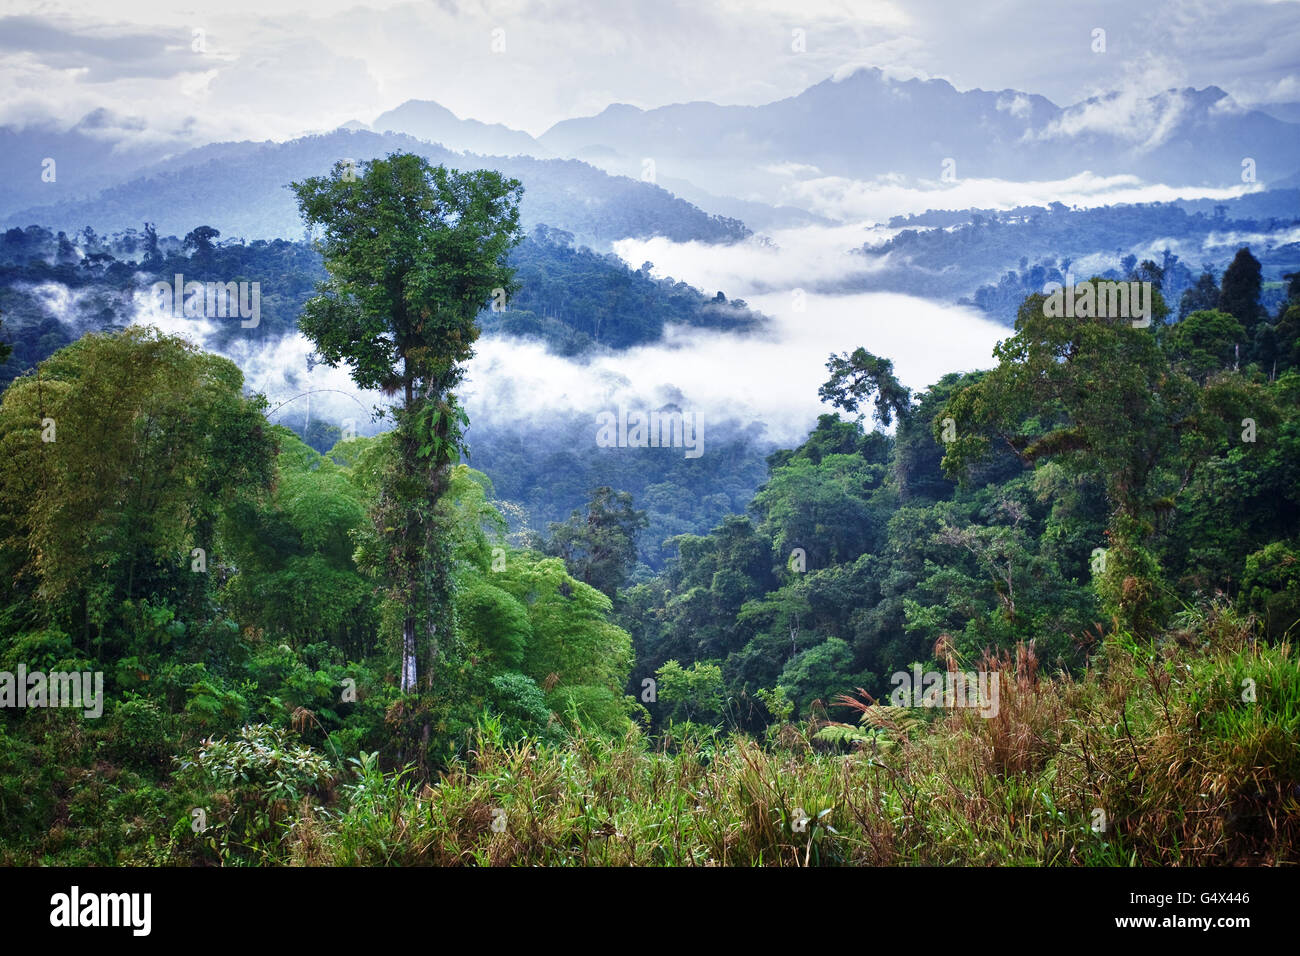 Amazon rainforest. Ecuador - Stock Image